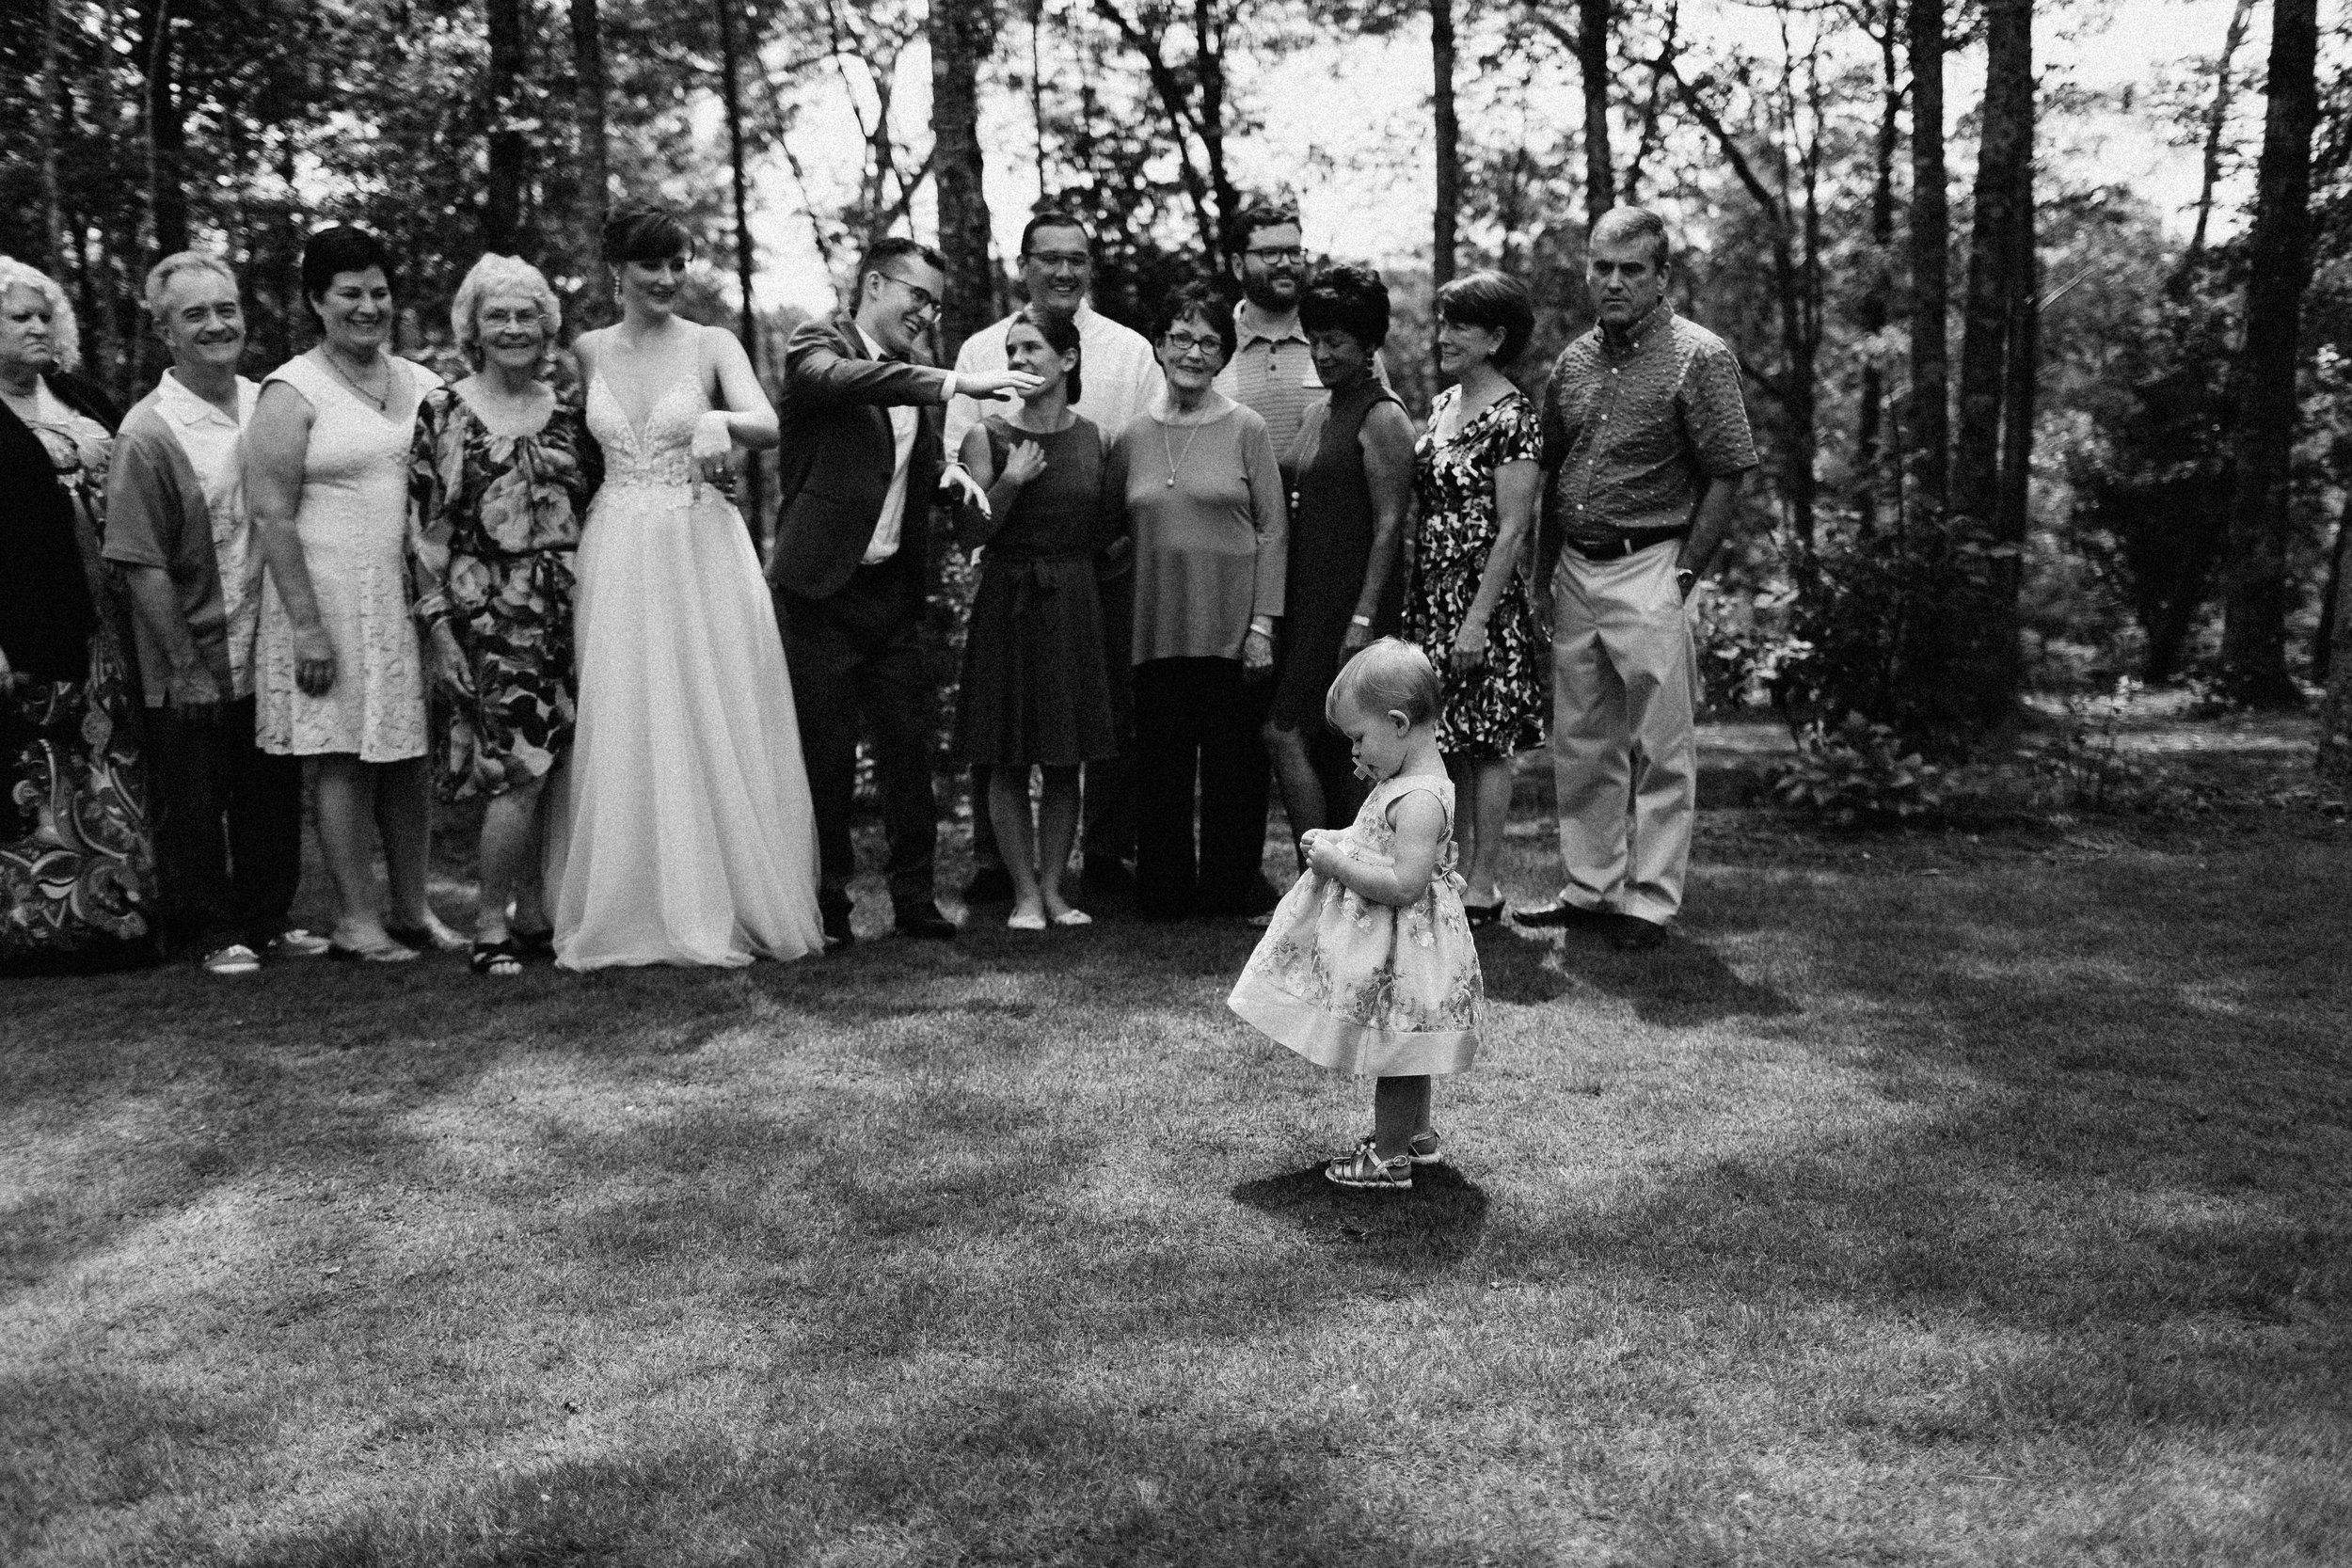 dahlonega_juliette_chapel_photojournalism_atlanta_wedding_photographers_1517.jpg